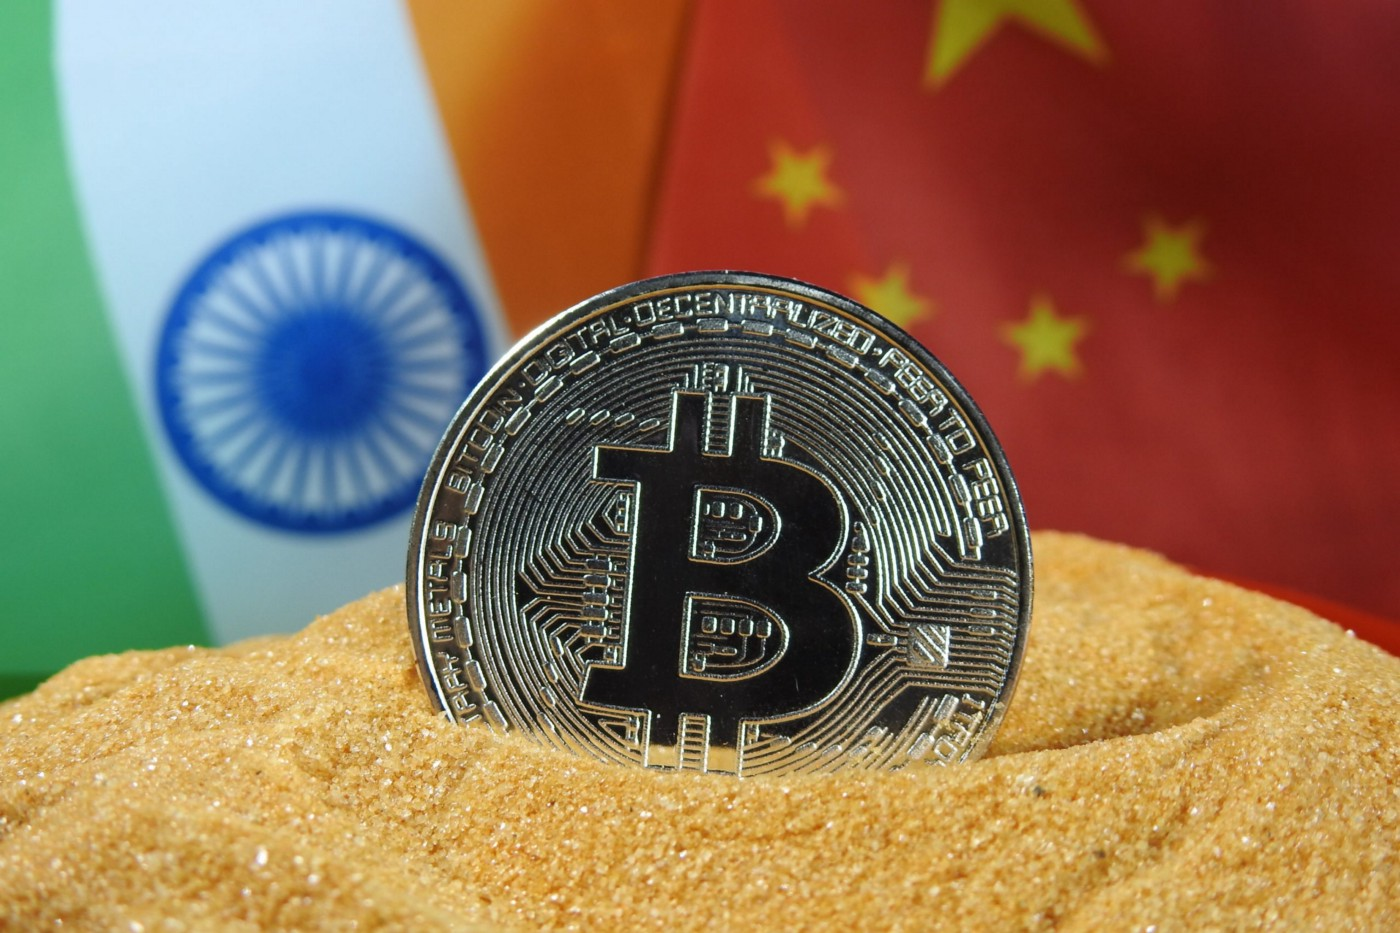 No Indian Cryptocurrency will be introduced